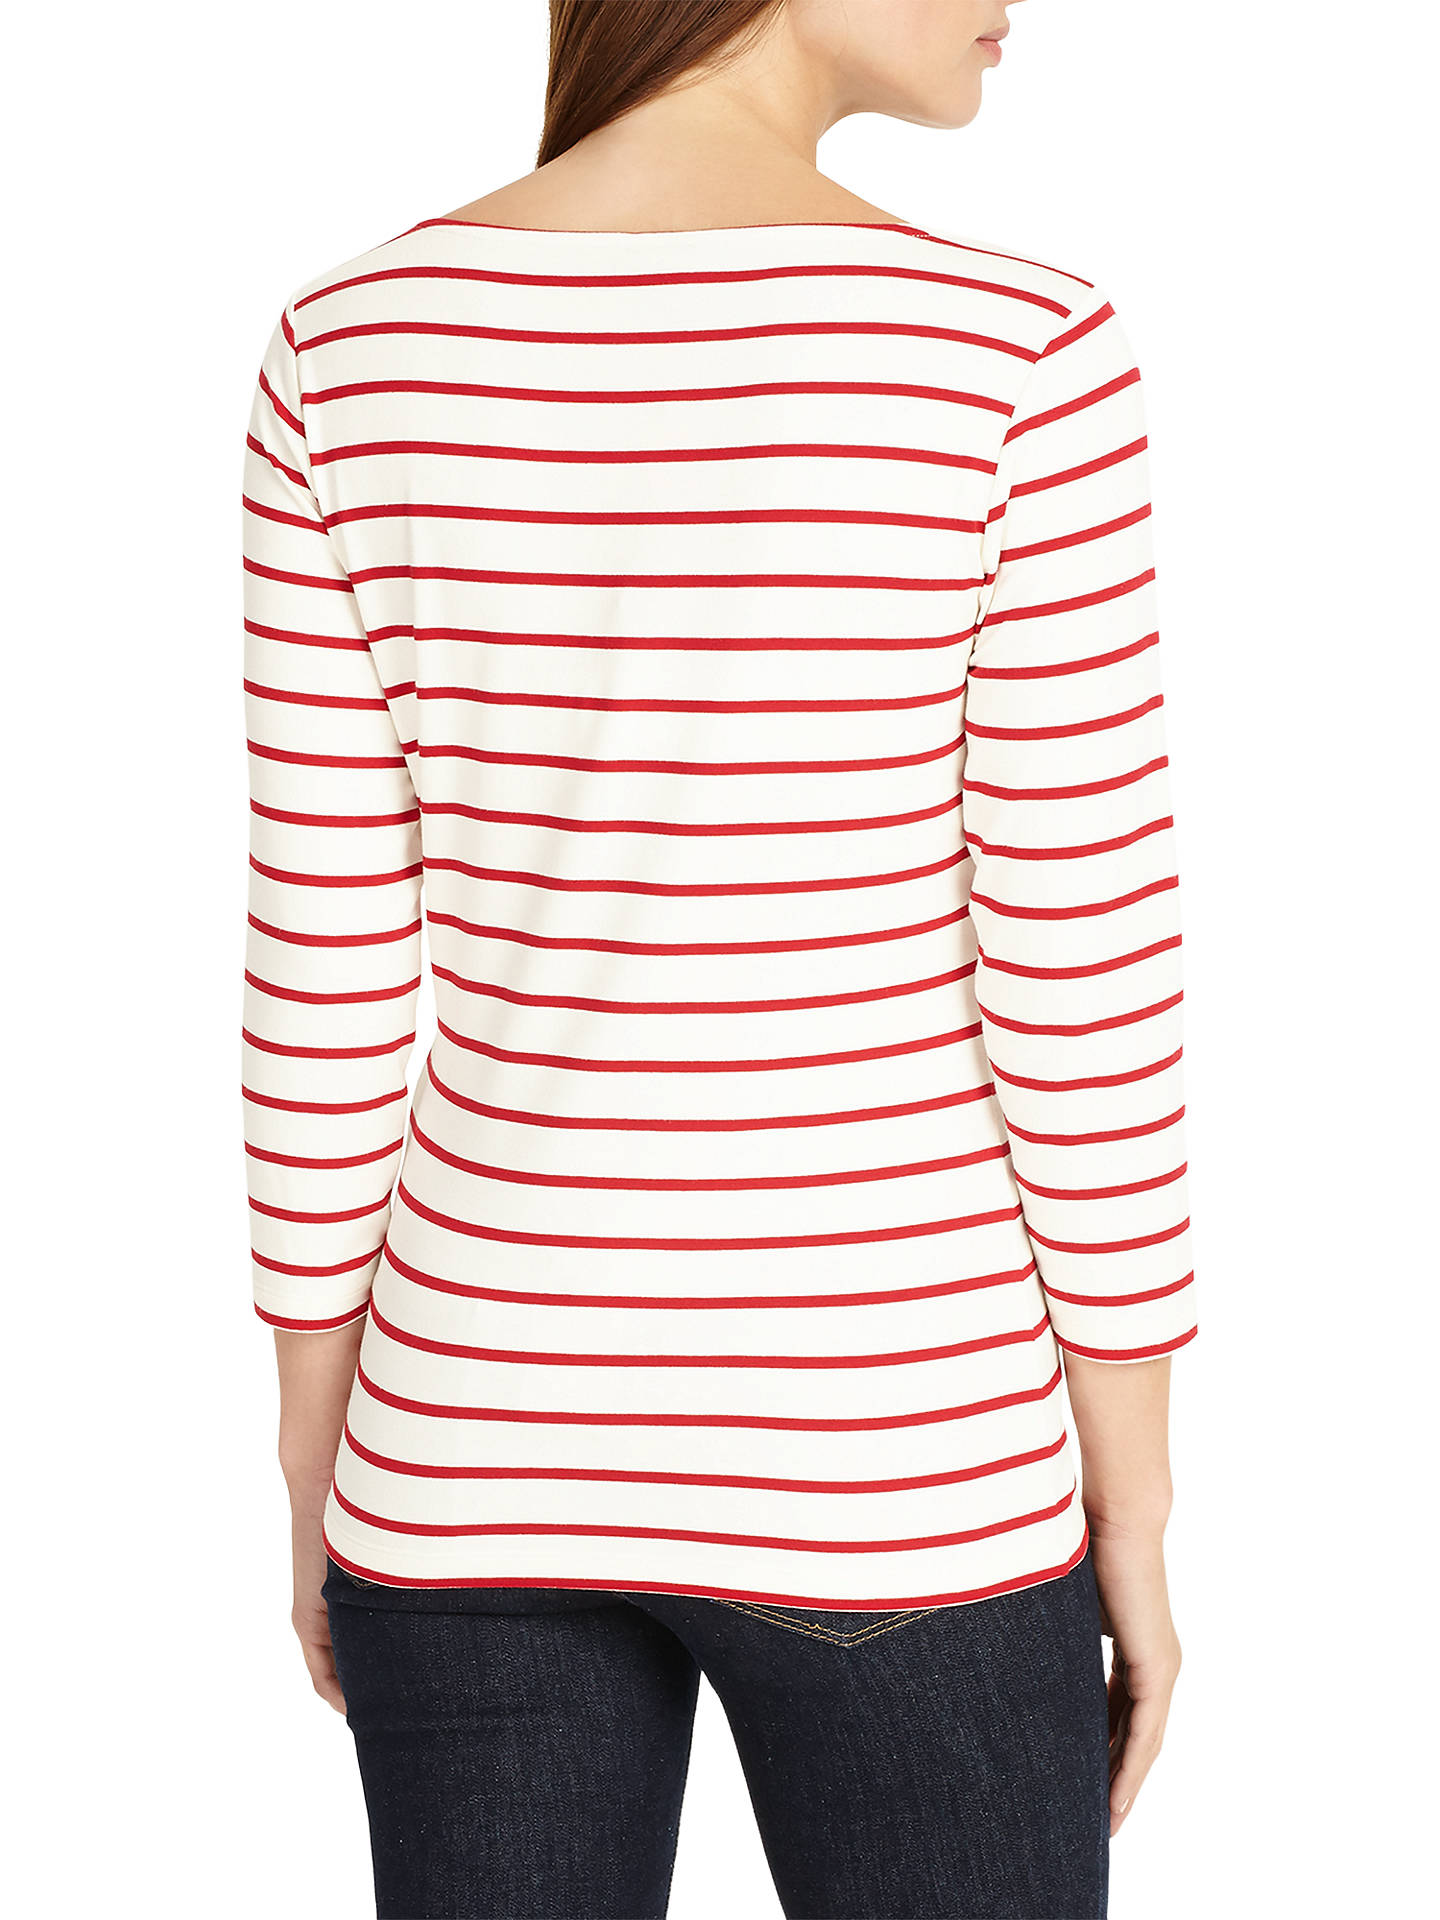 BuyPhase Eight Stella Stripe Top, Red/White, 8 Online at johnlewis.com